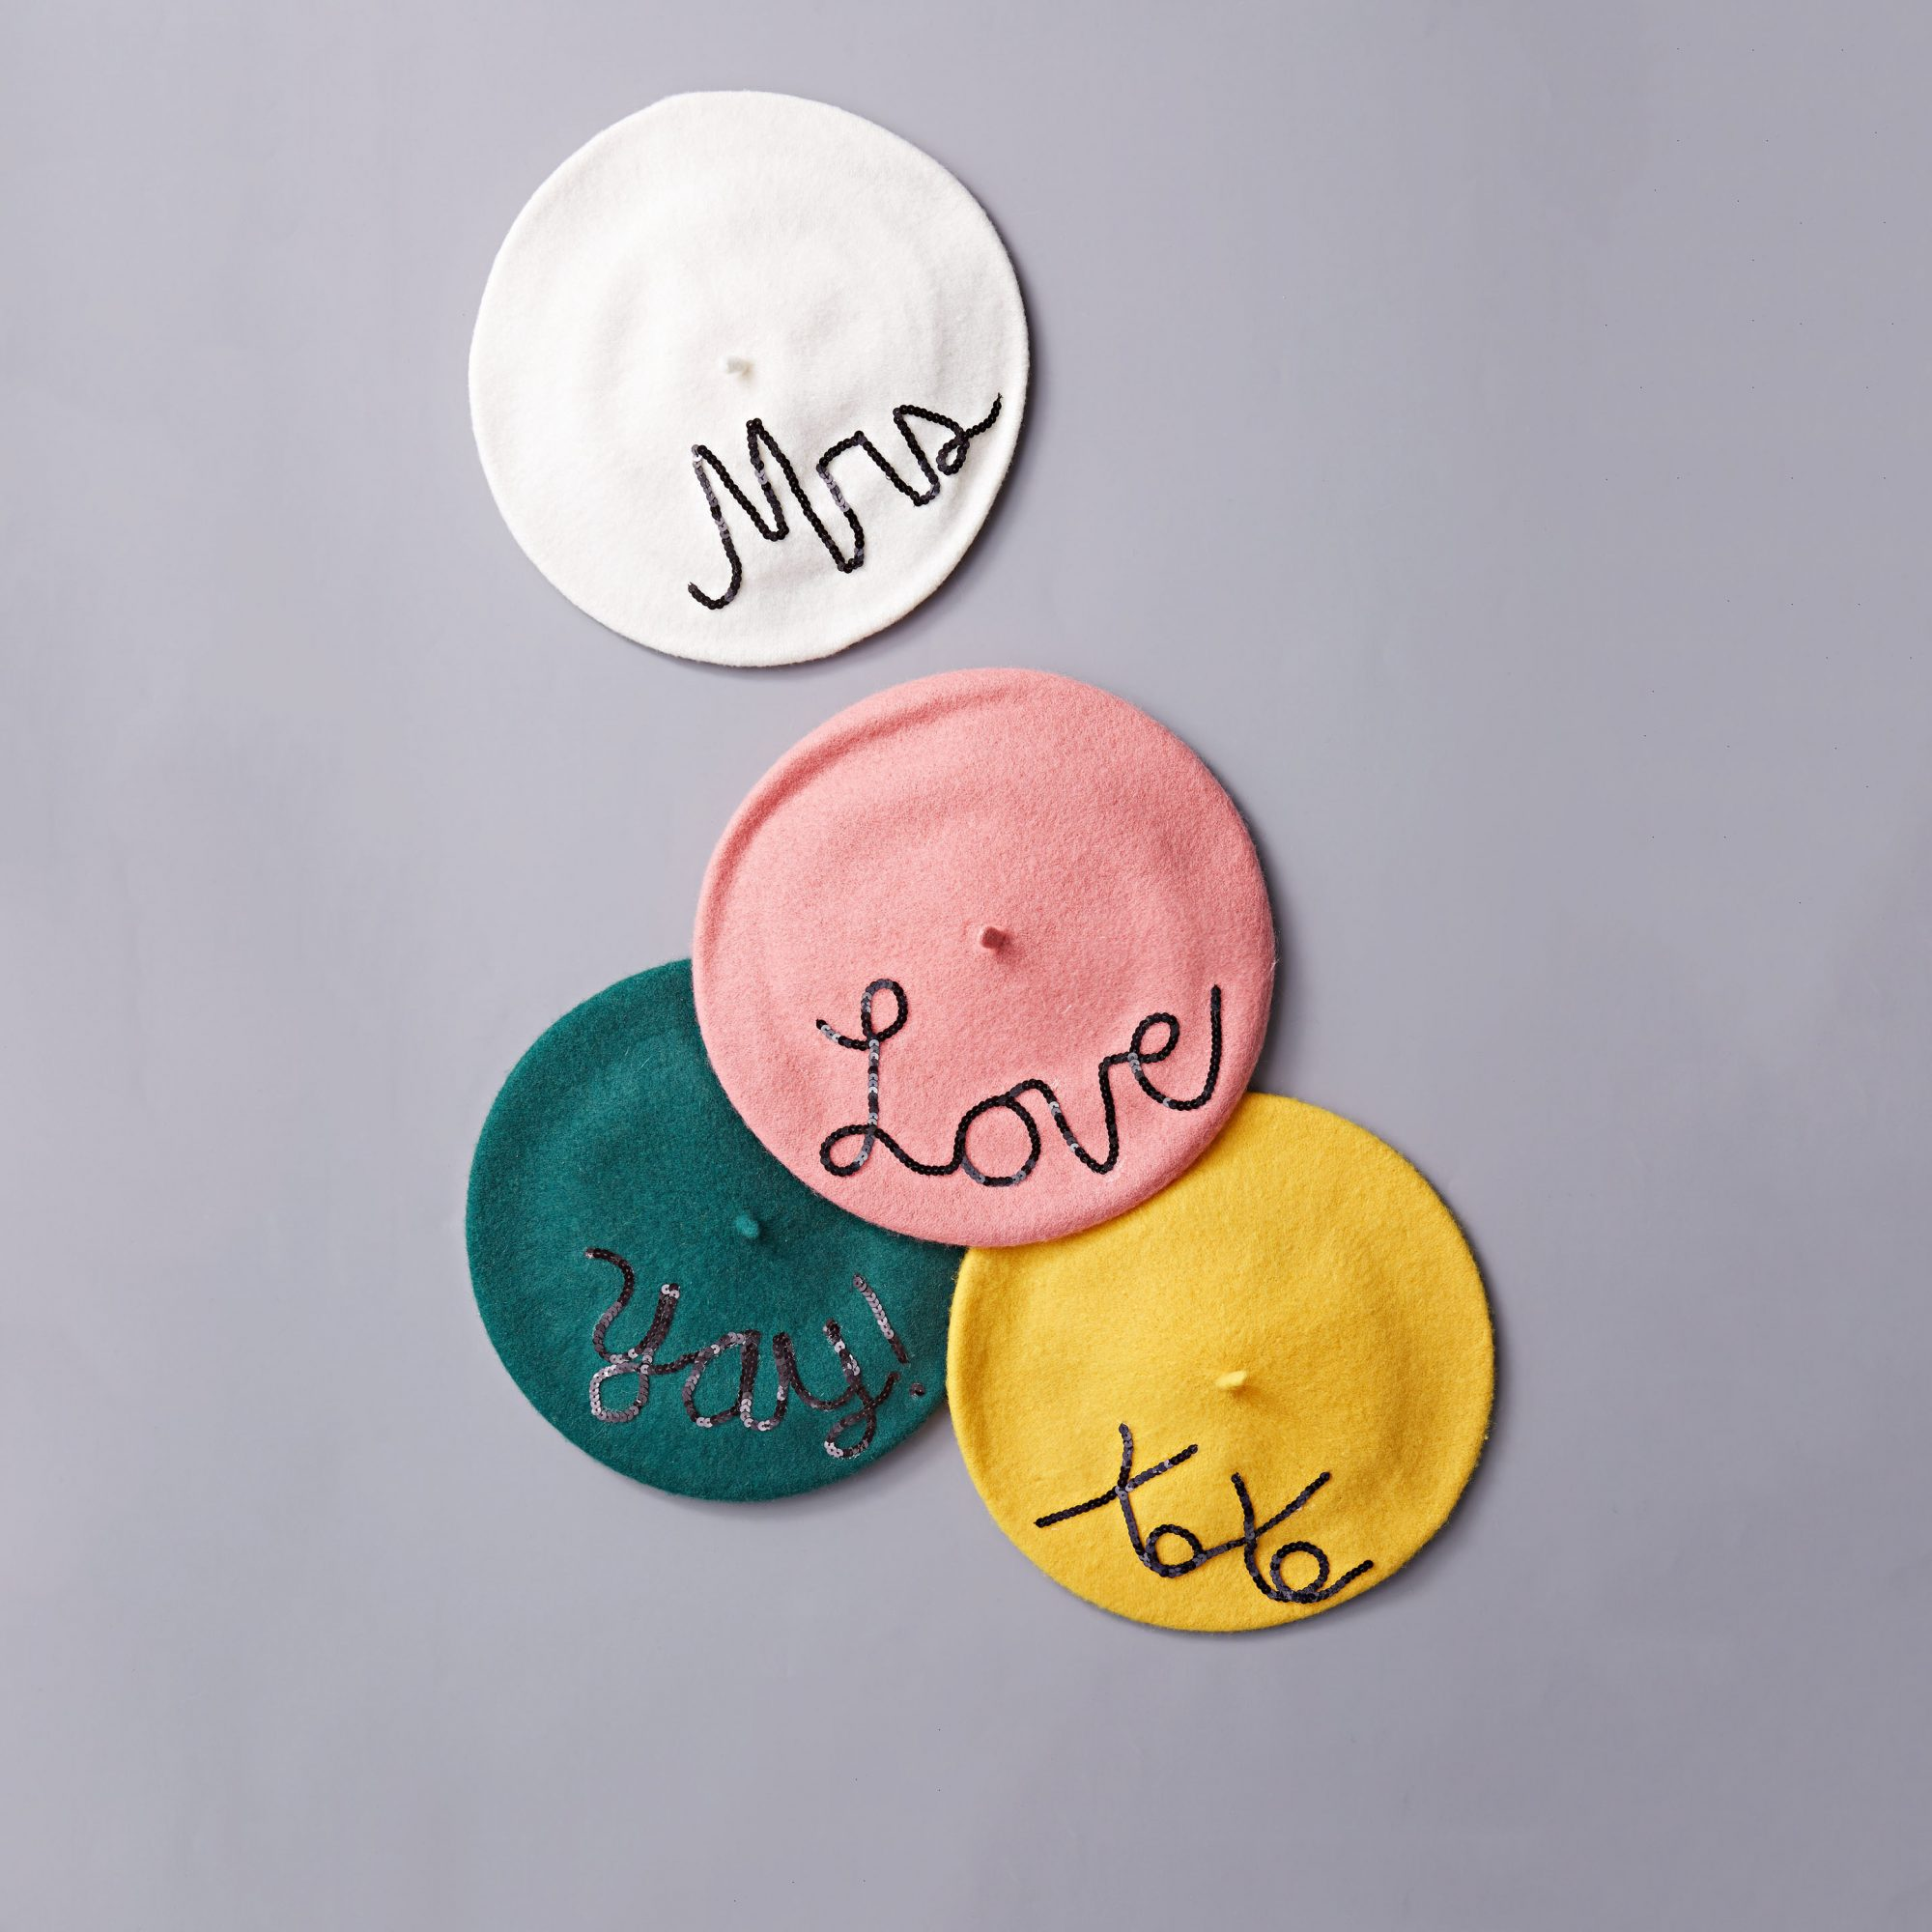 Gift your girls these chic accessories to wear during your bachelorette weekend. Simply purchase berets, freehand phrases using black sequin trim (a script font is easiest), then attach them using fabric glue. Mix and match different words and colors or make each hat uniform—either way, be sure to take an Instagram!